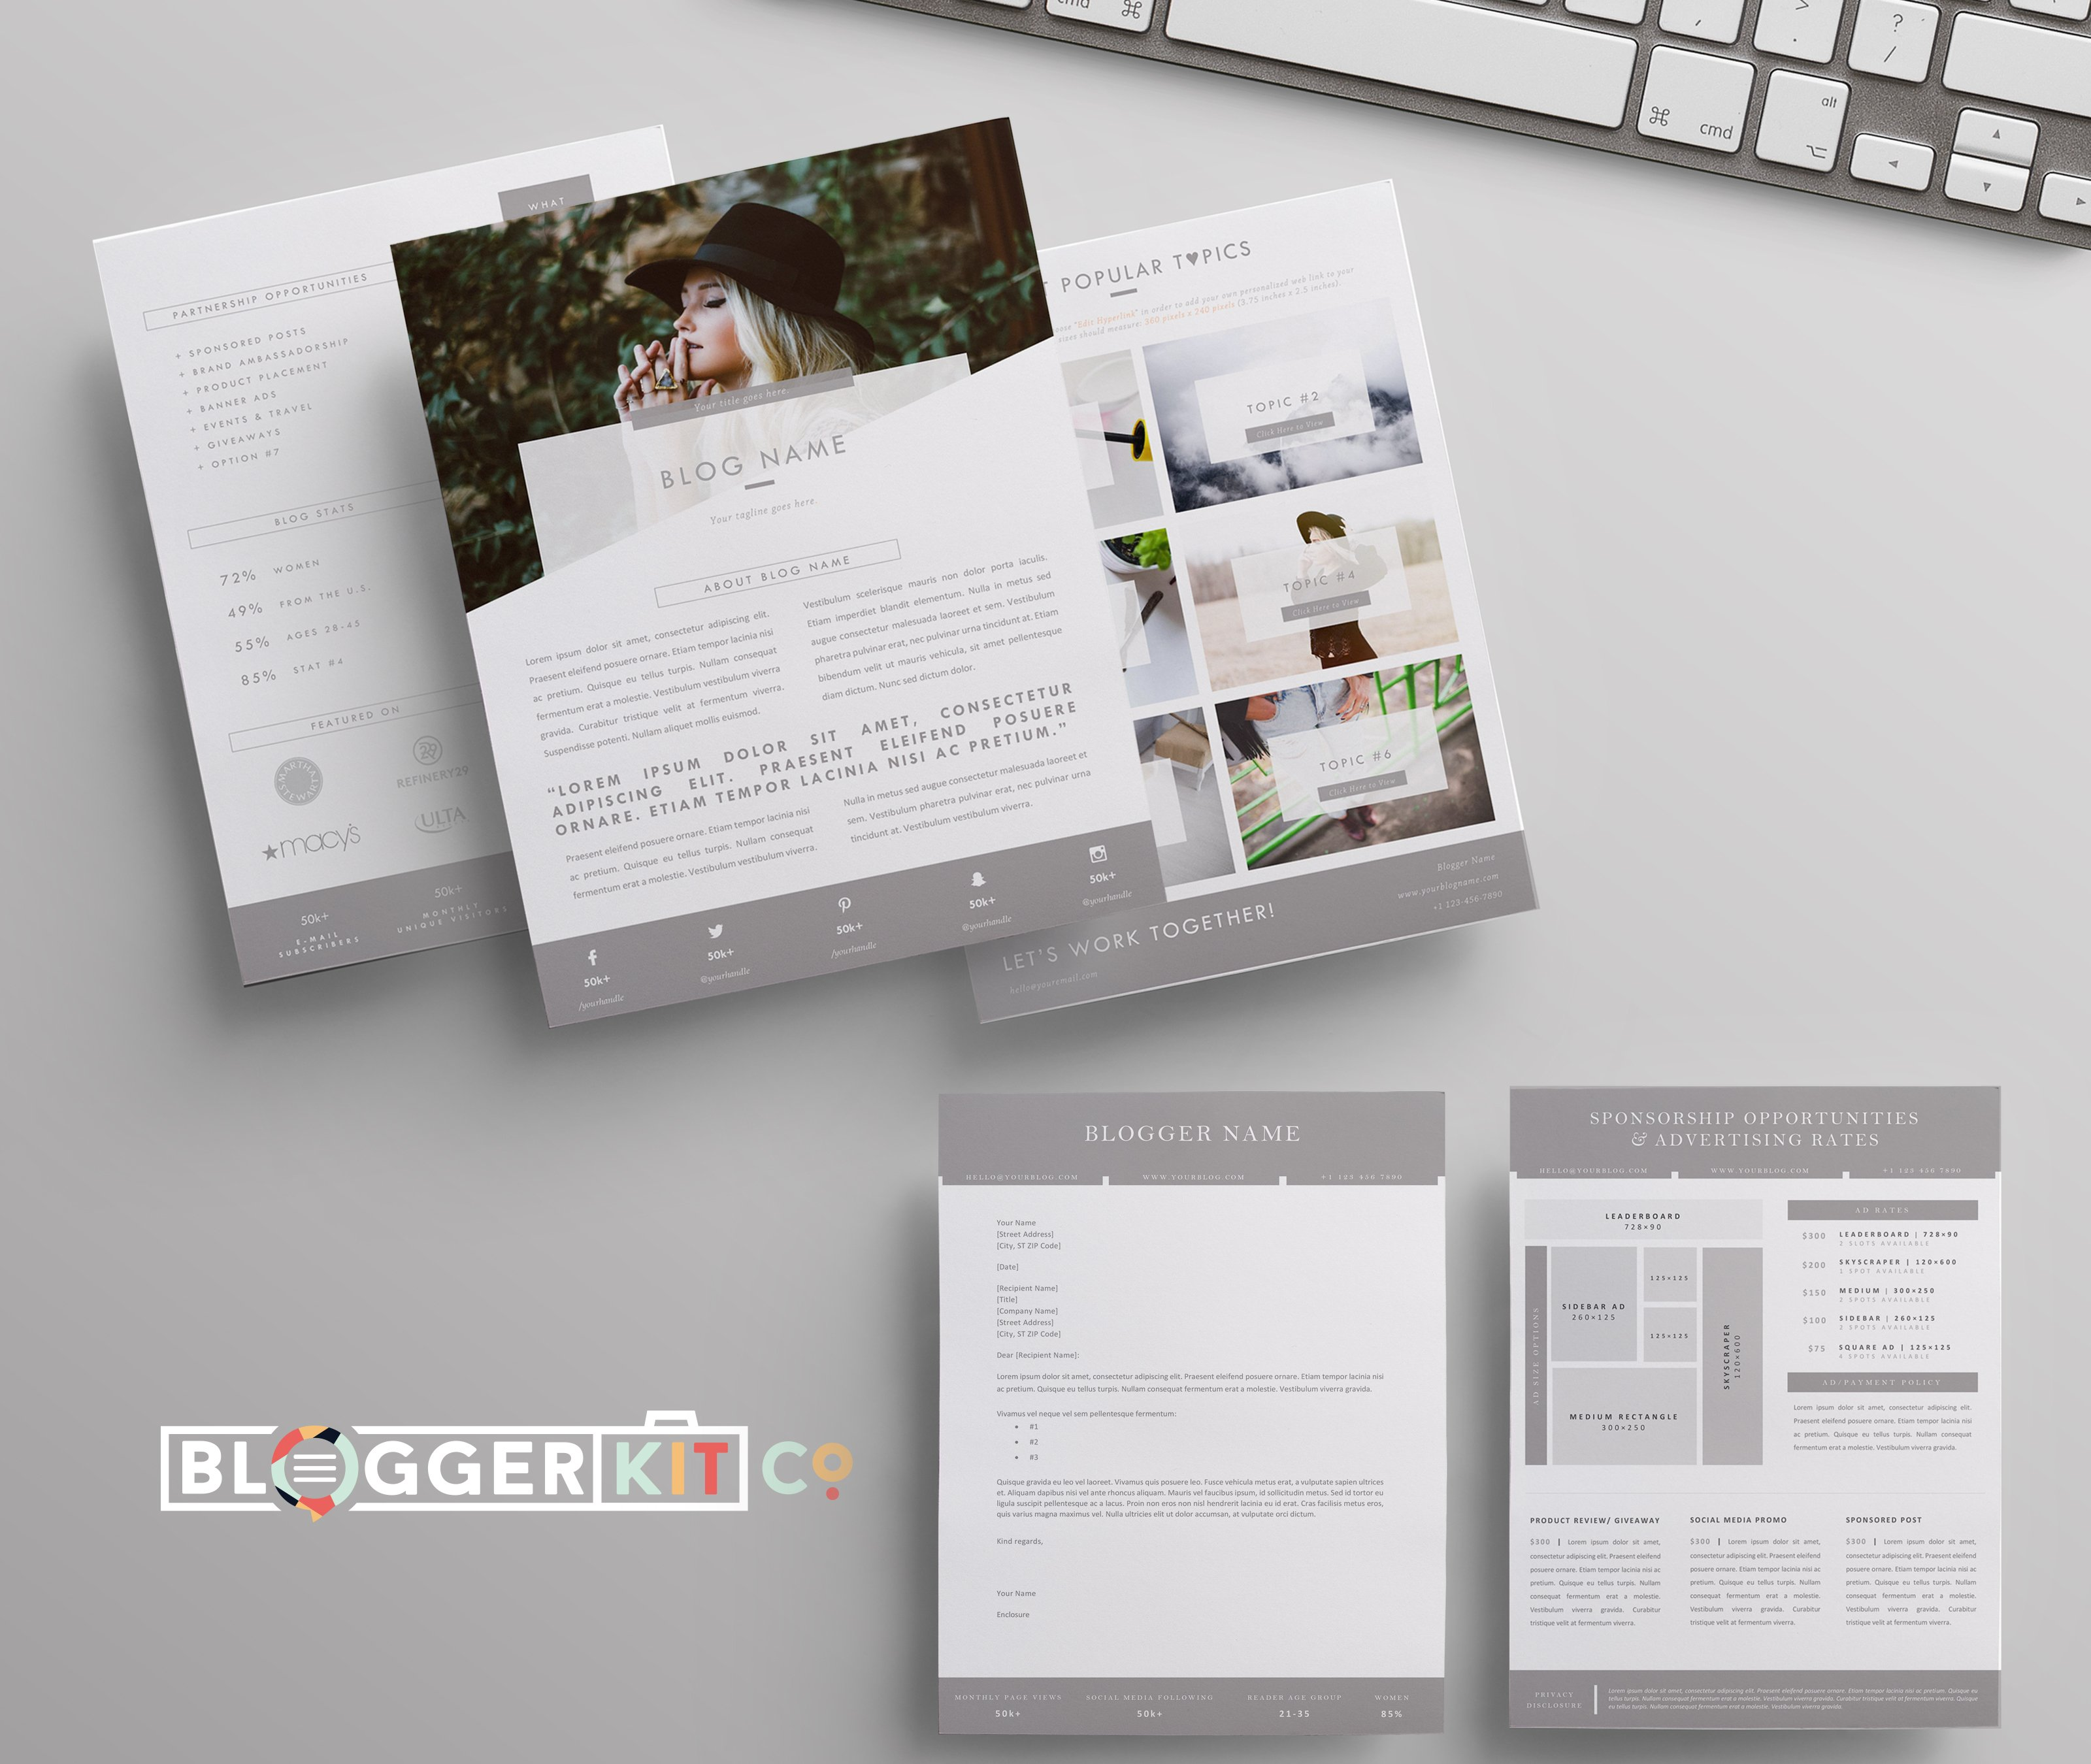 Blog media kit sponsorship 5 pgs resume templates for Press packet template